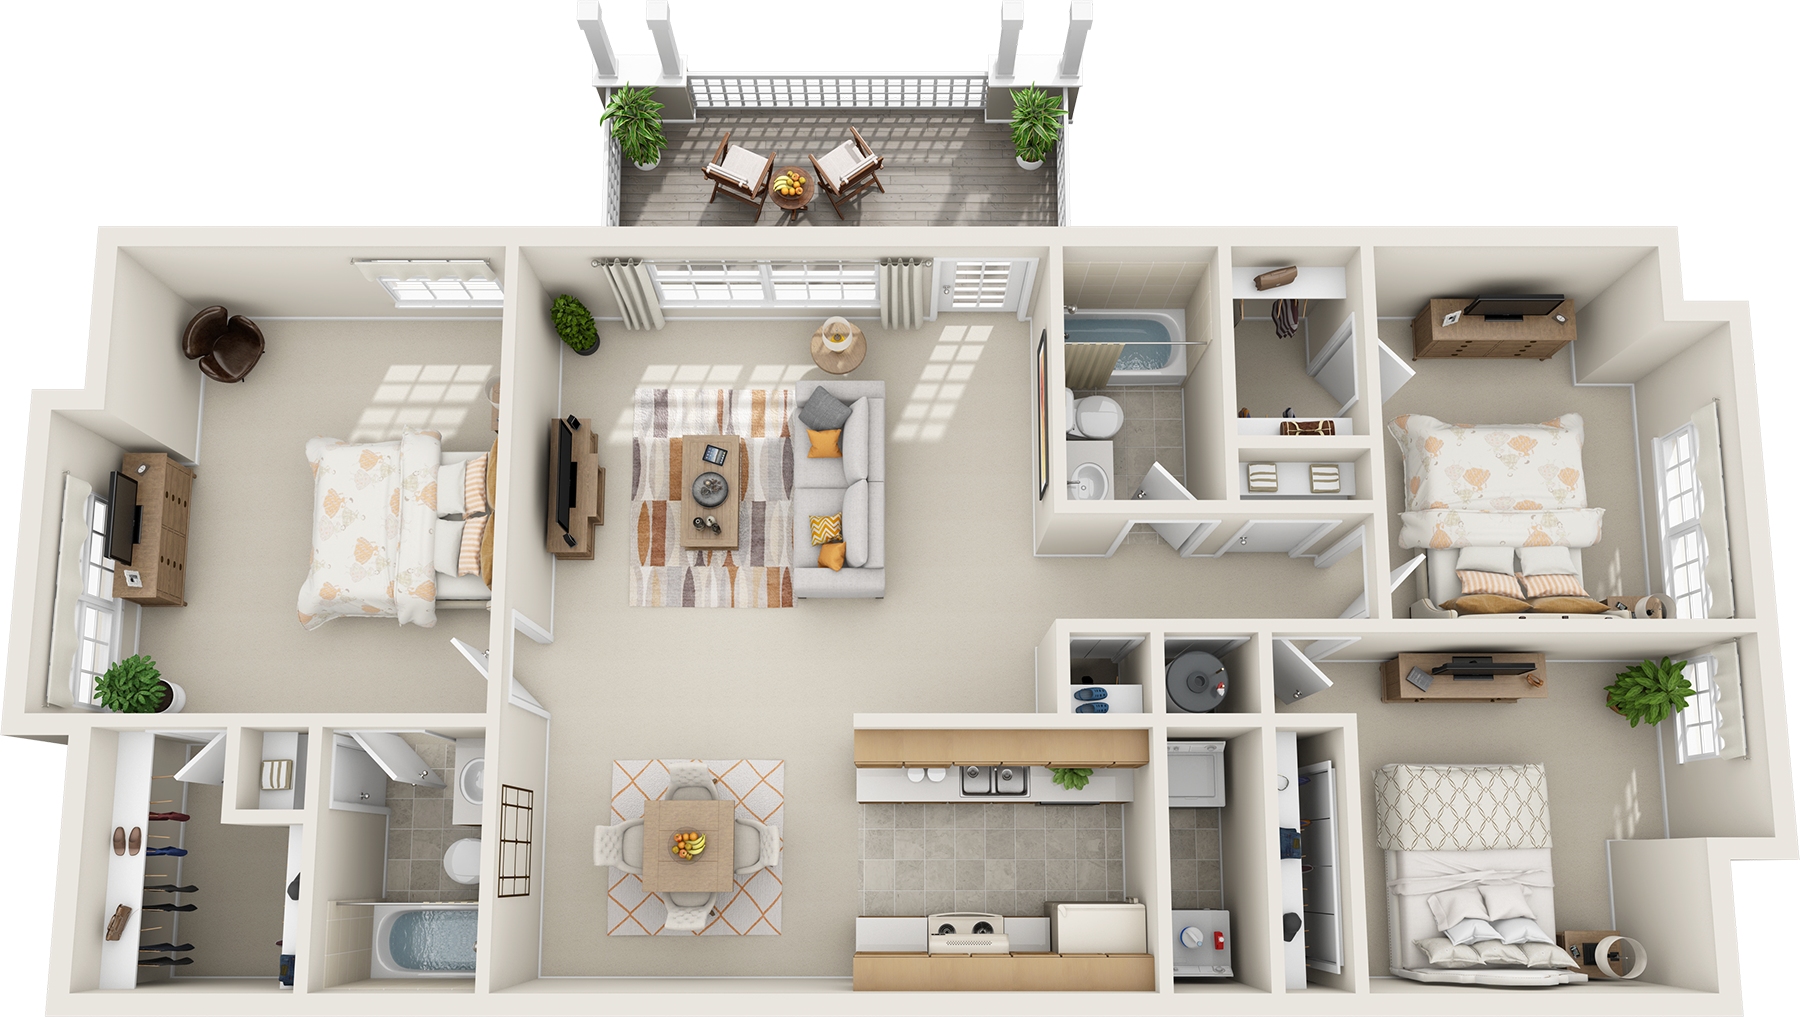 Extraordinary 90 3 Bedroom Floor Plans 3d Decorating Design Of Insight Of 3 Bedroom 3d Floor